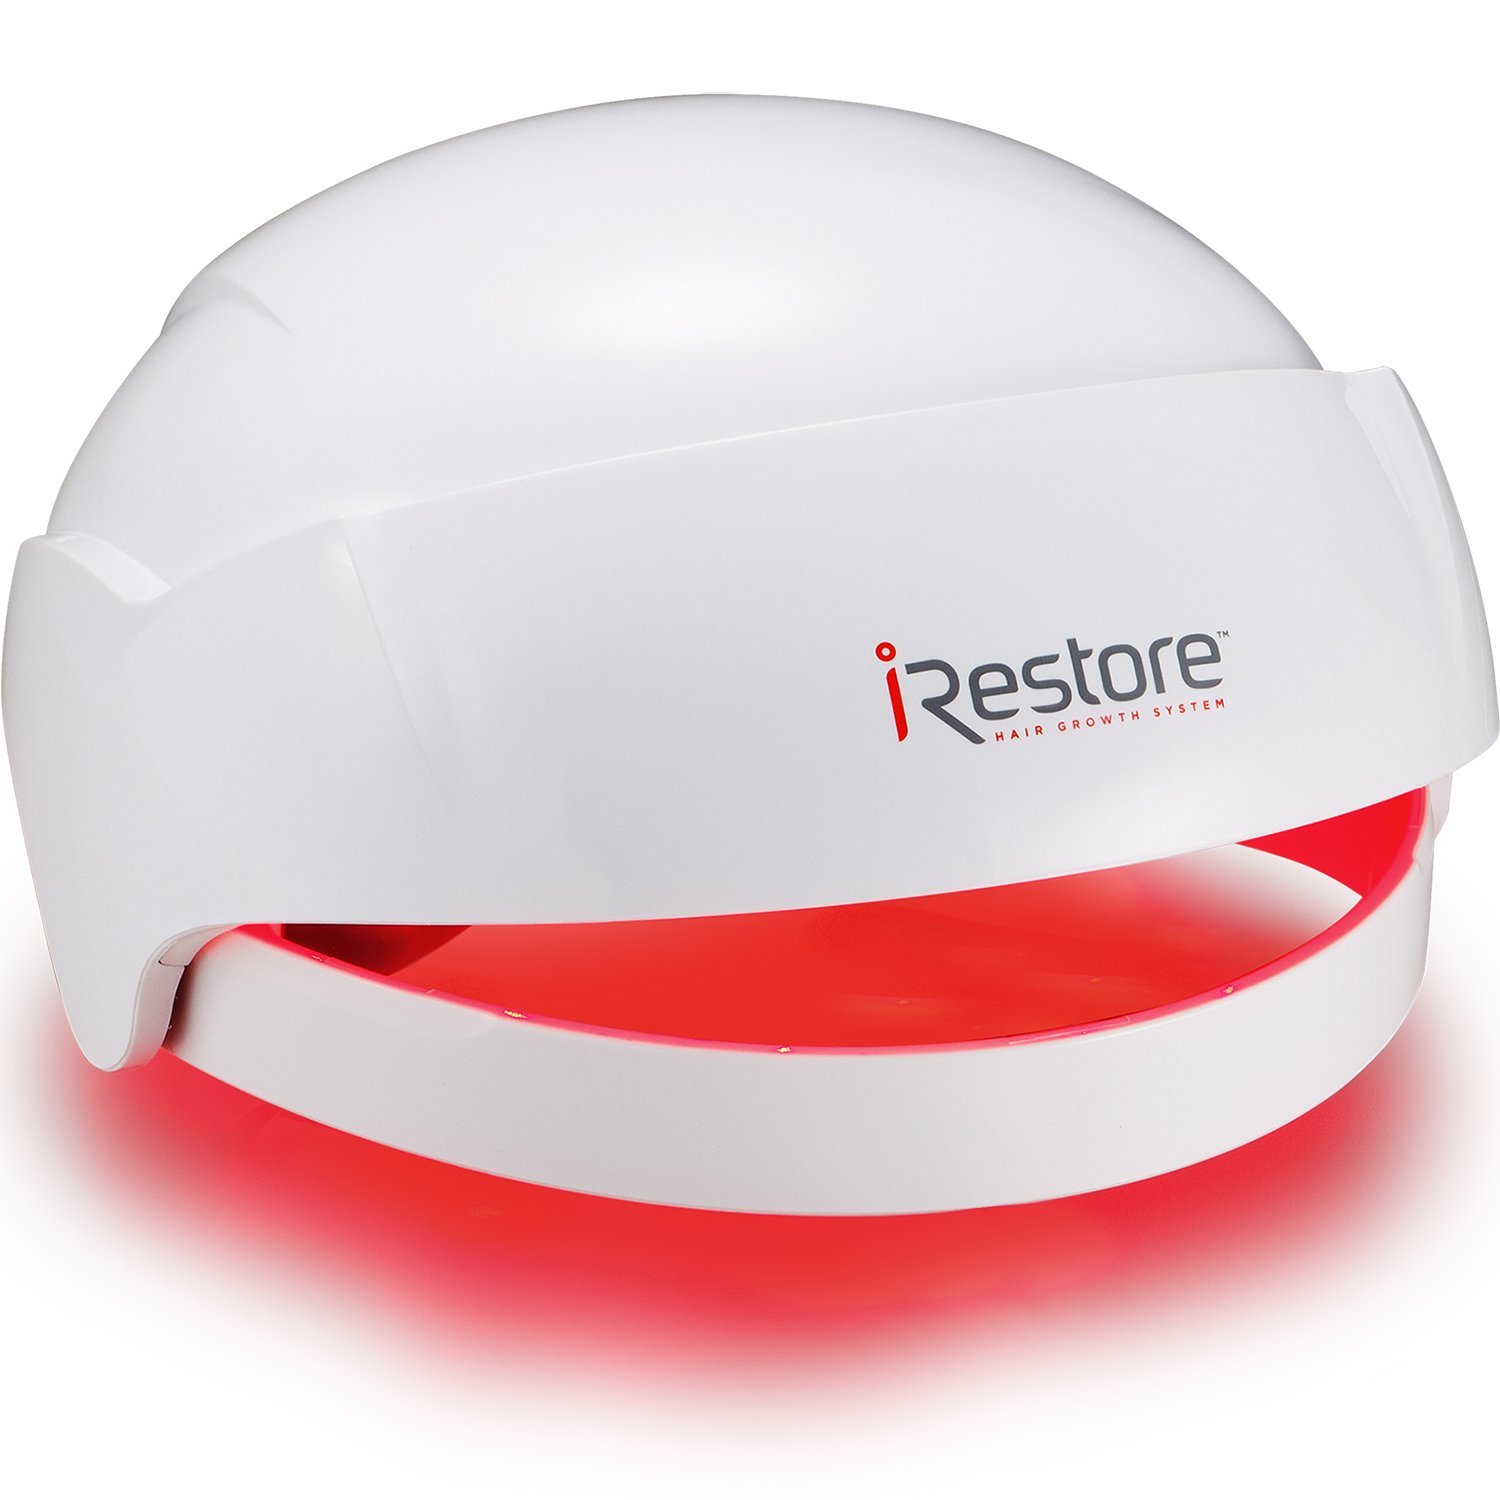 laser treatment cap, hair growth treatment products for men, how to make your hair thicker